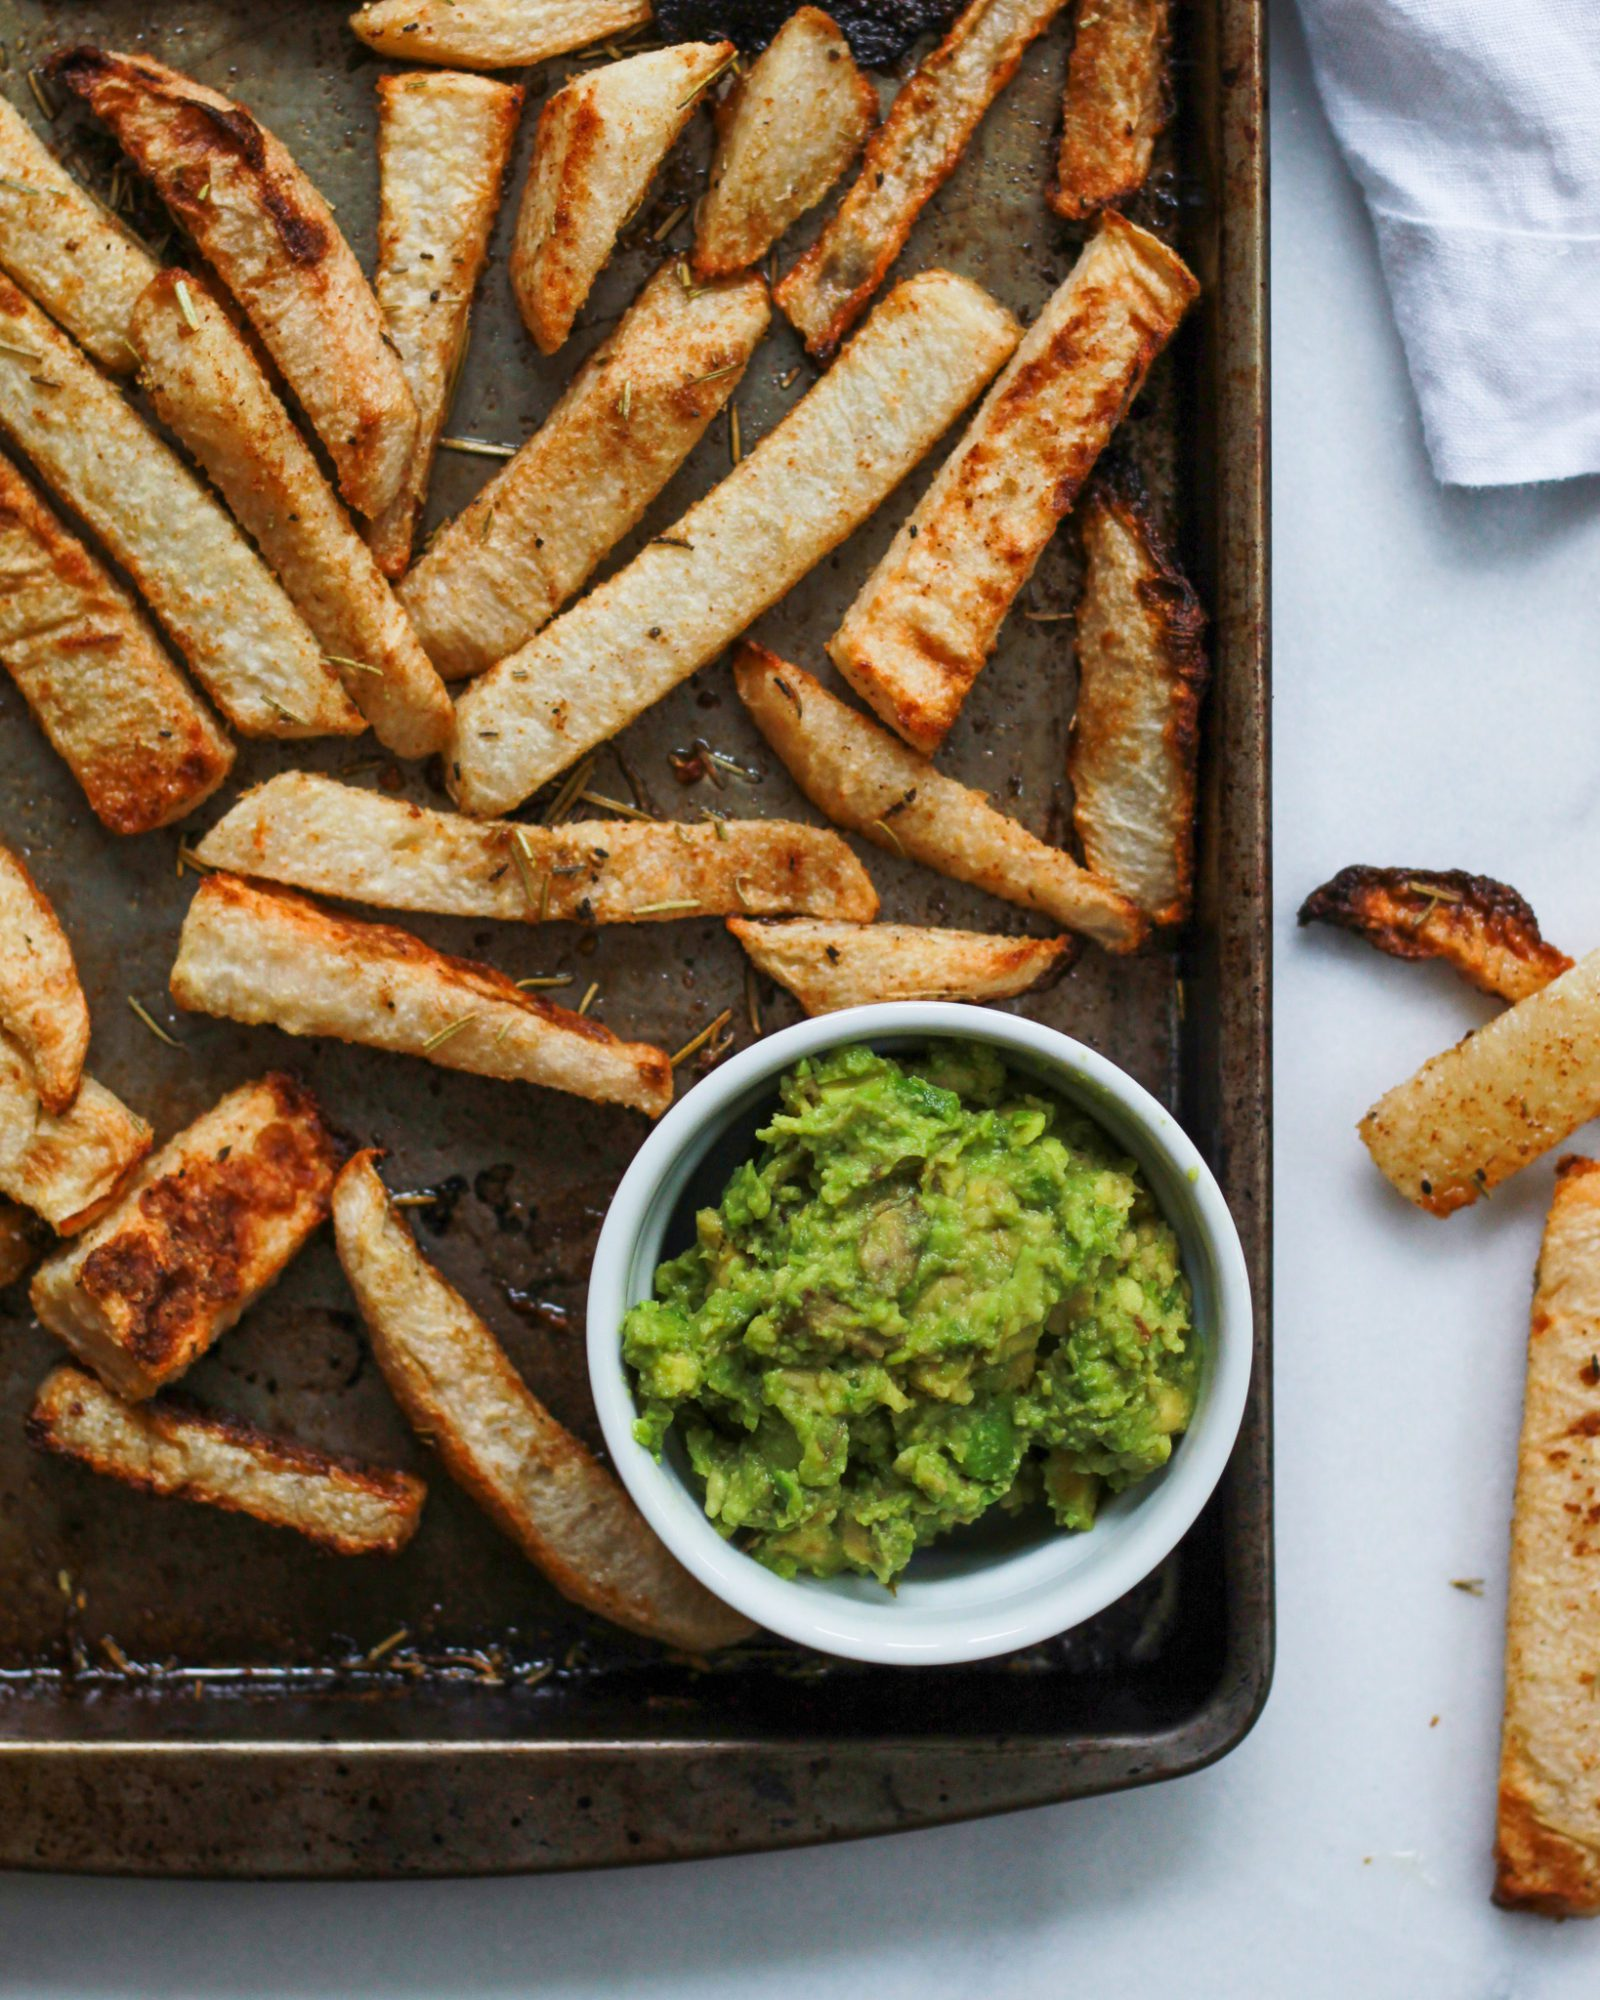 paleo french fries with guacamole